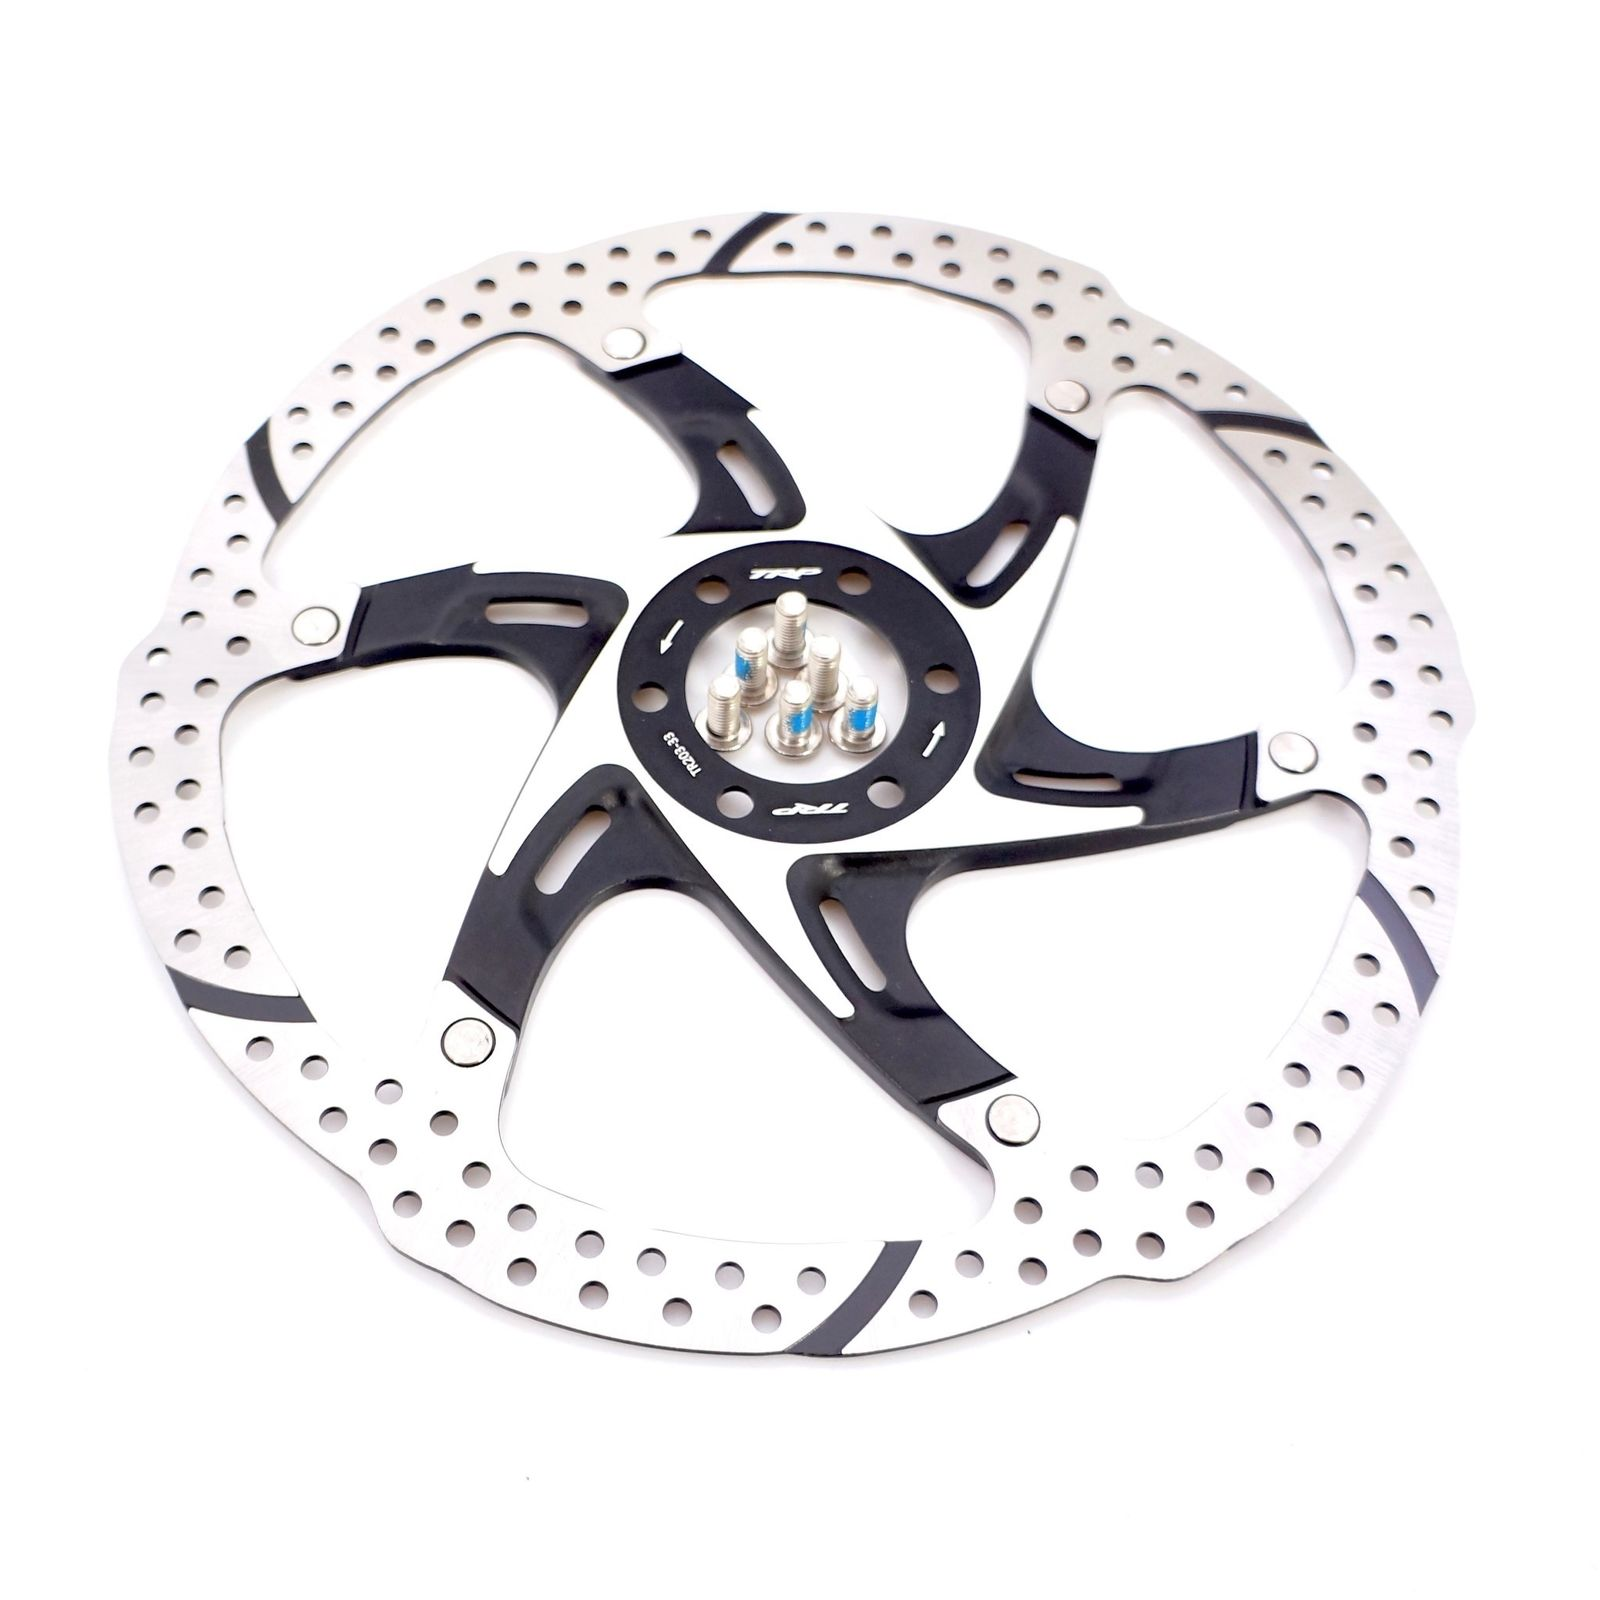 180mm The TRP TRP-13 2 Piece Rotor For MTB Road Bike Black